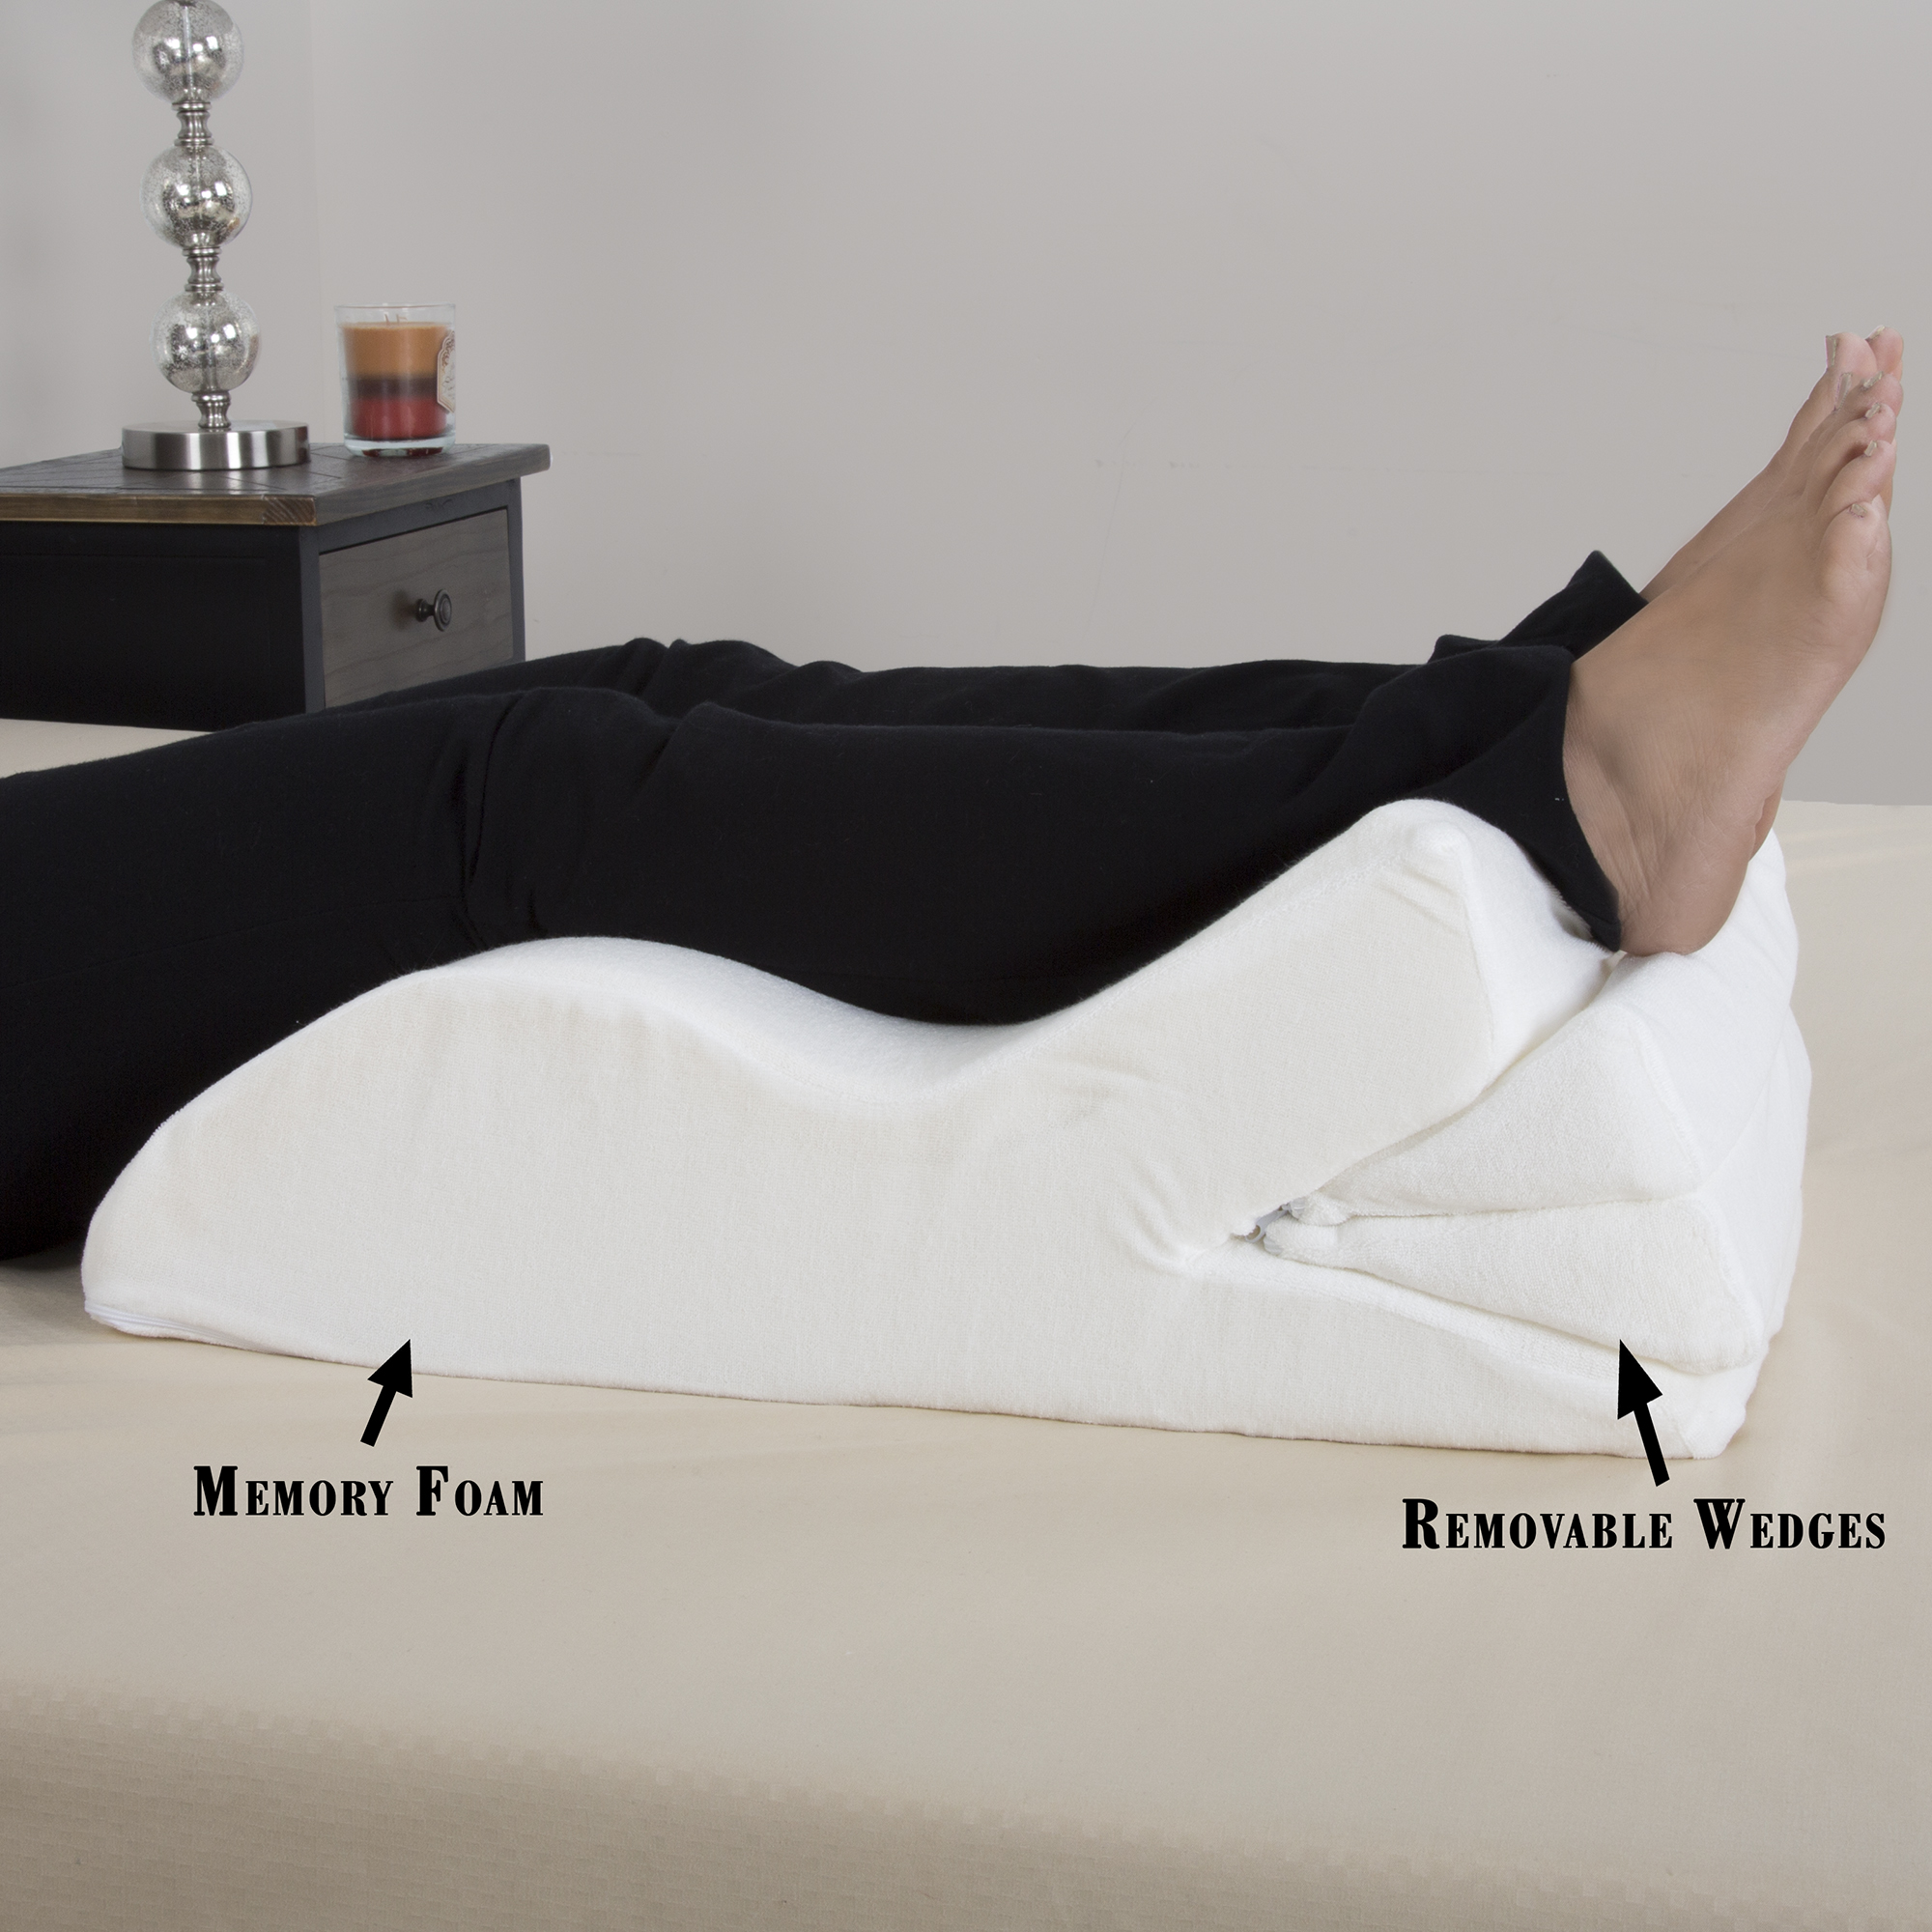 Bluestone Adjustable Leg Wedge Support Cushion with White Cover